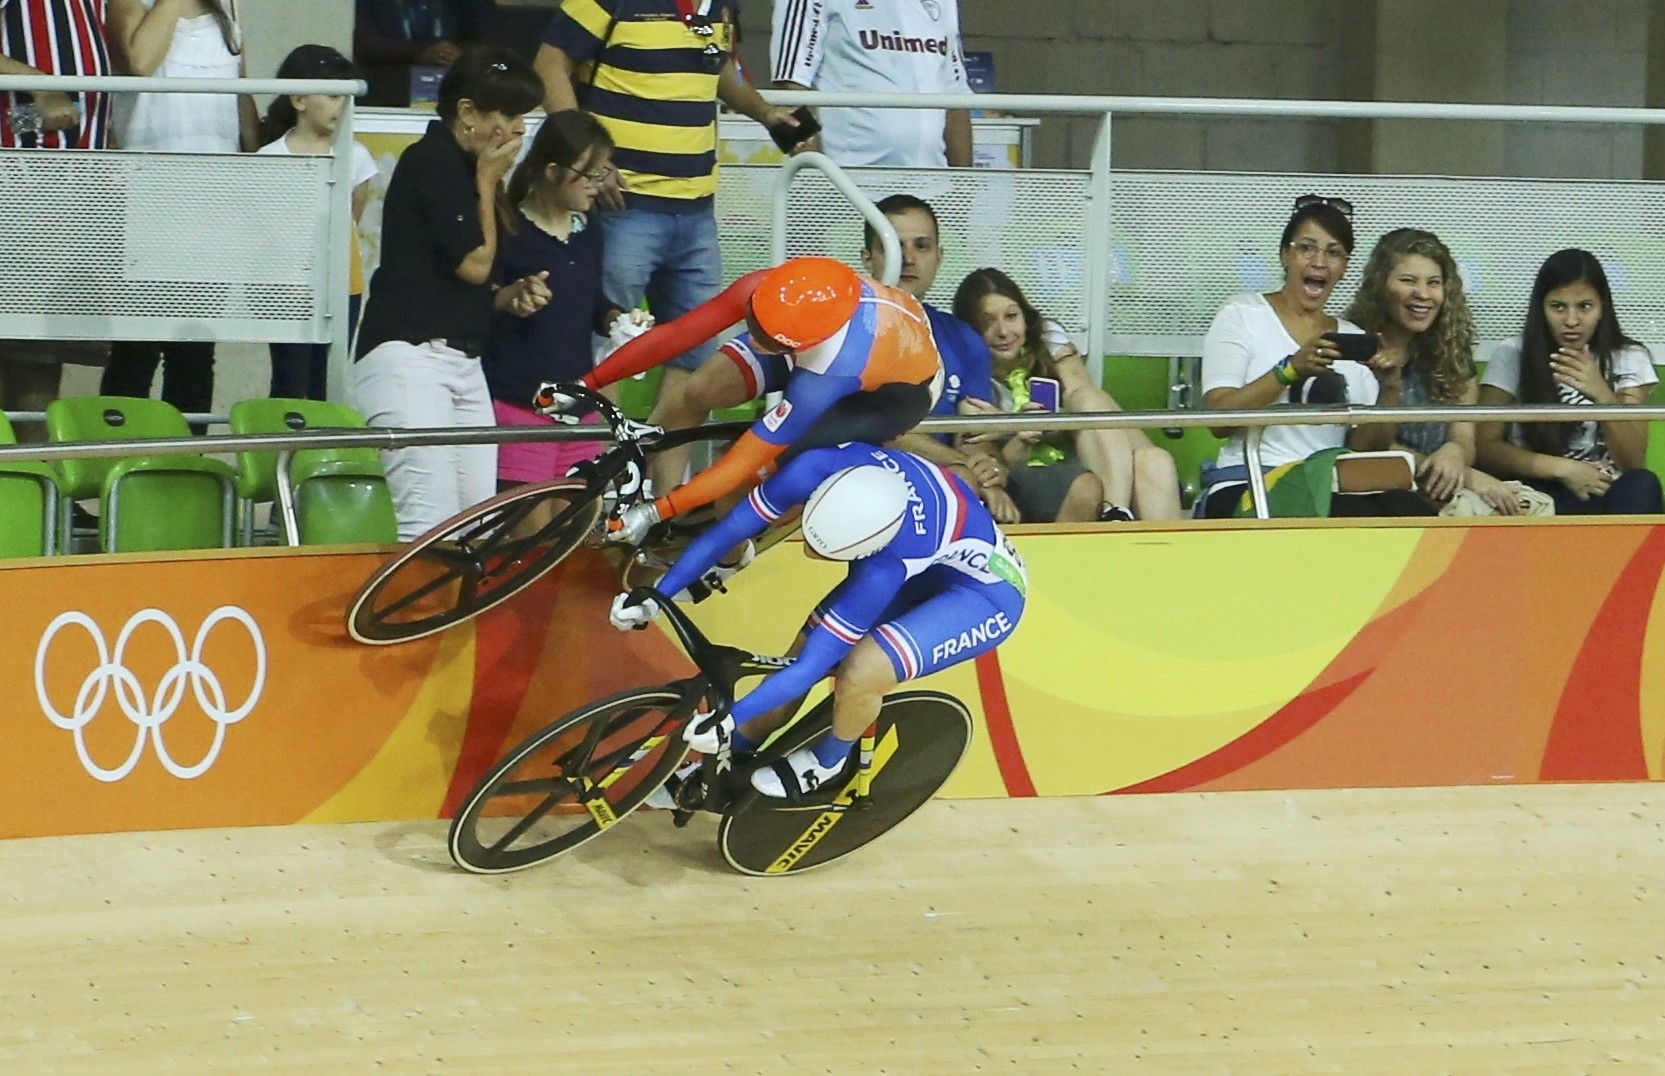 Laurine van Riessen (NED) of Netherlands and Virginie Cueff (FRA) of France compete